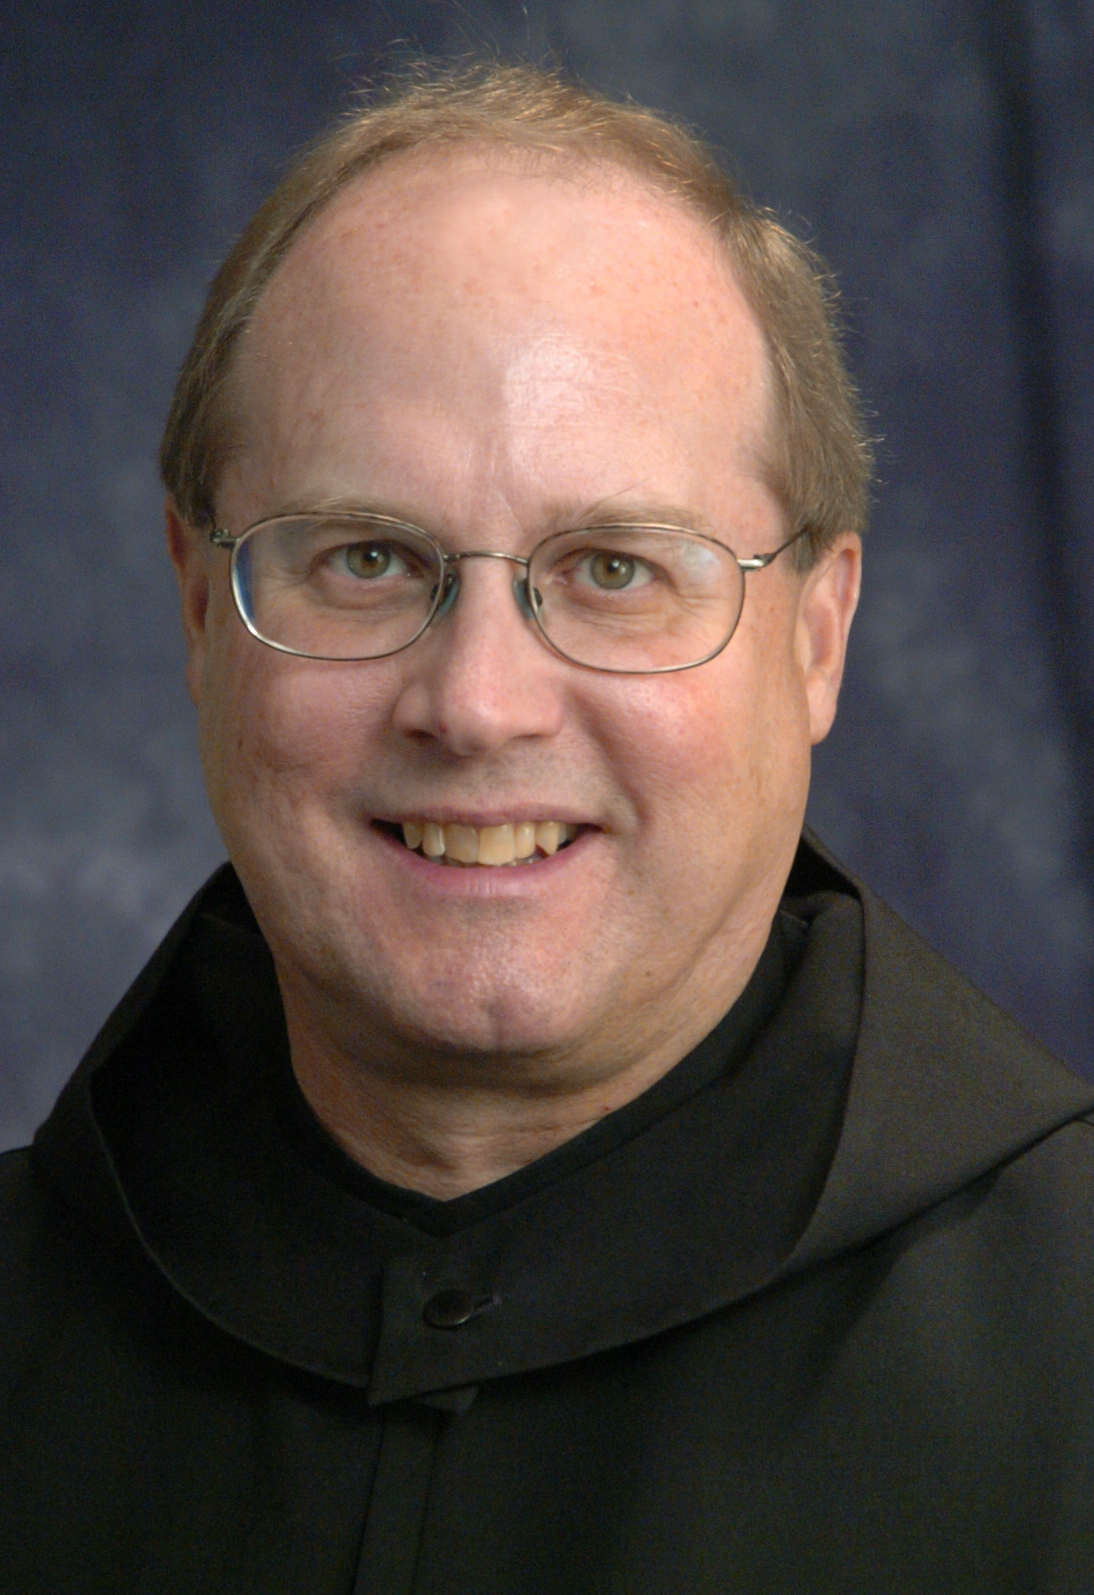 FR. ERIC HOLLAS, OSB  Deputy to the President for Advancement in the Office of Institutional Advancement, Saint John's University; Faculty Saint John's University; Member of the Order of the Holy Sepulchre and chaplain in the Western Association of the Order of Malta  B.A. History, Princeton, 1971; M.Div. Saint John's University School of Theology and Seminary; Ph.D. Medieval Studies, Yale University.